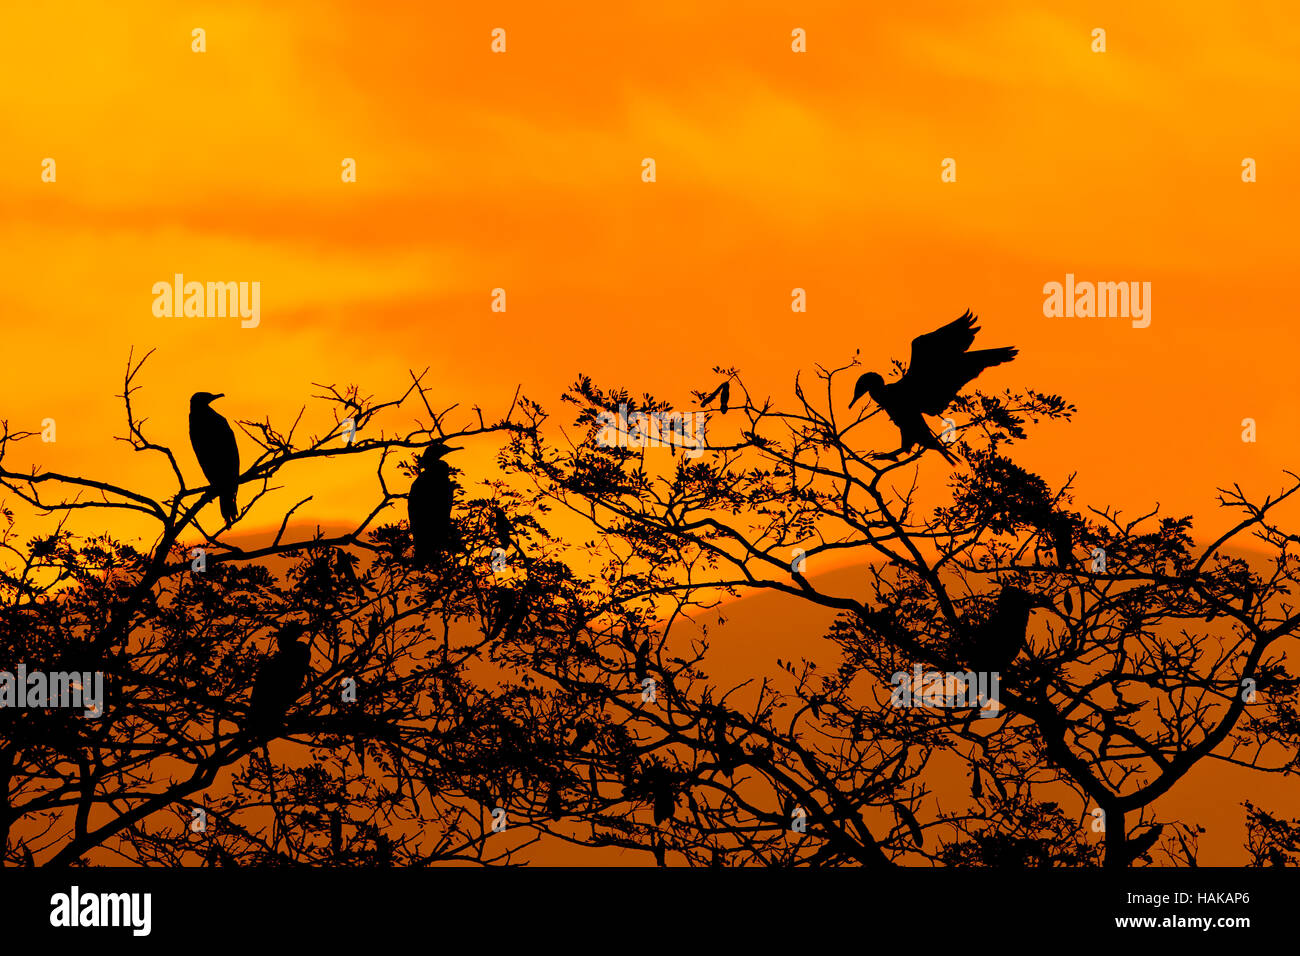 Silhouette Of Great Cormorant with Rising Sun - Stock Image